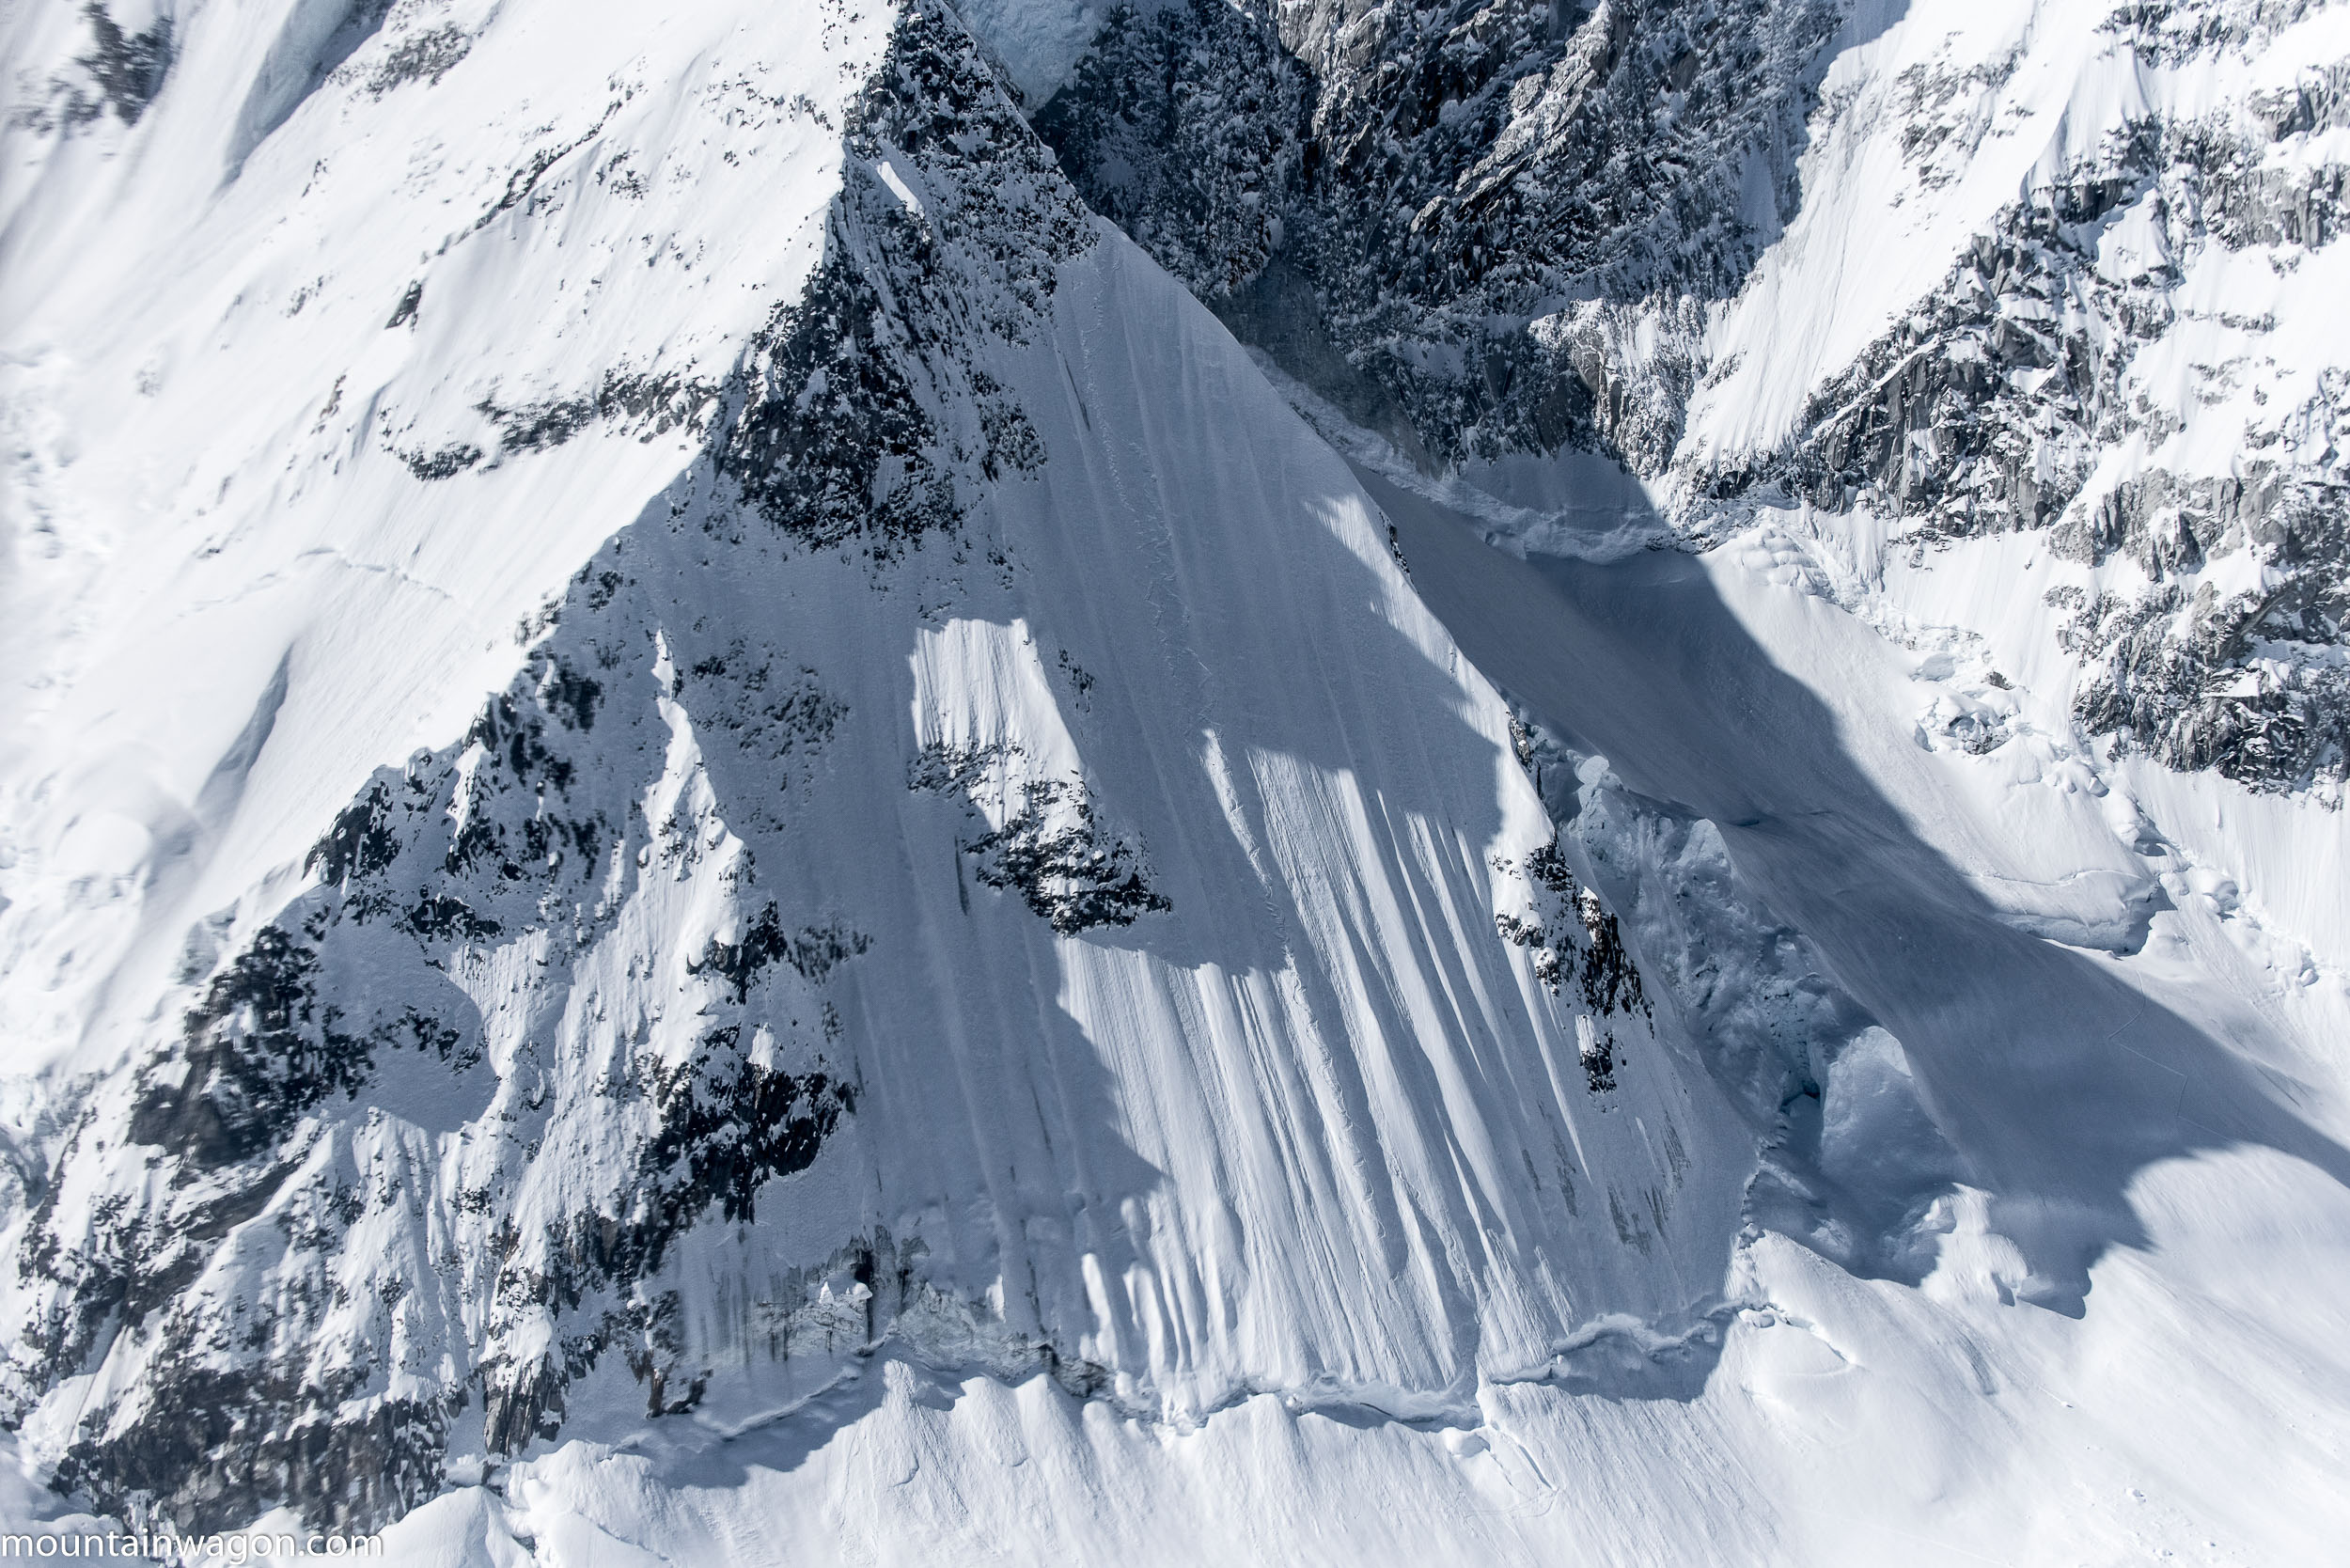 Looking back on the line and it's no less incredible from the air - photo: Zach Clanton